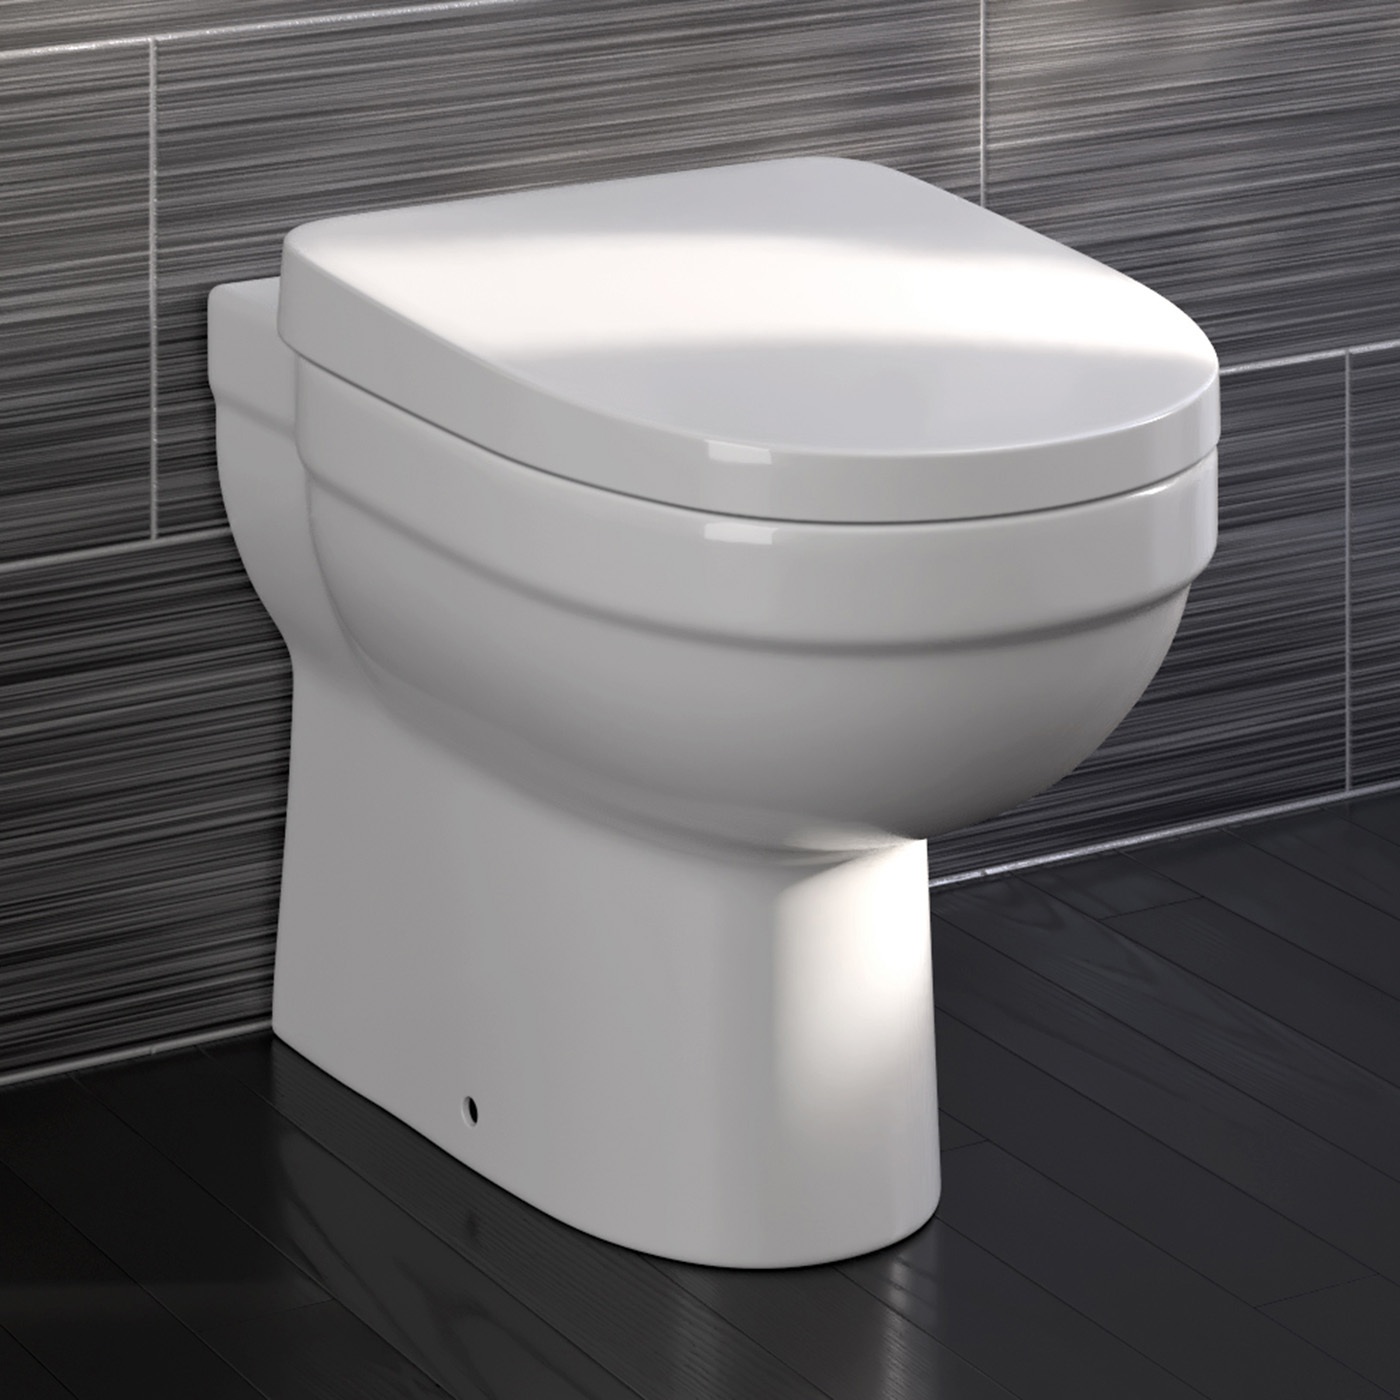 modern design back to wall bathroom wc toilet seat ctbtw  ebay - bathroom mirrors